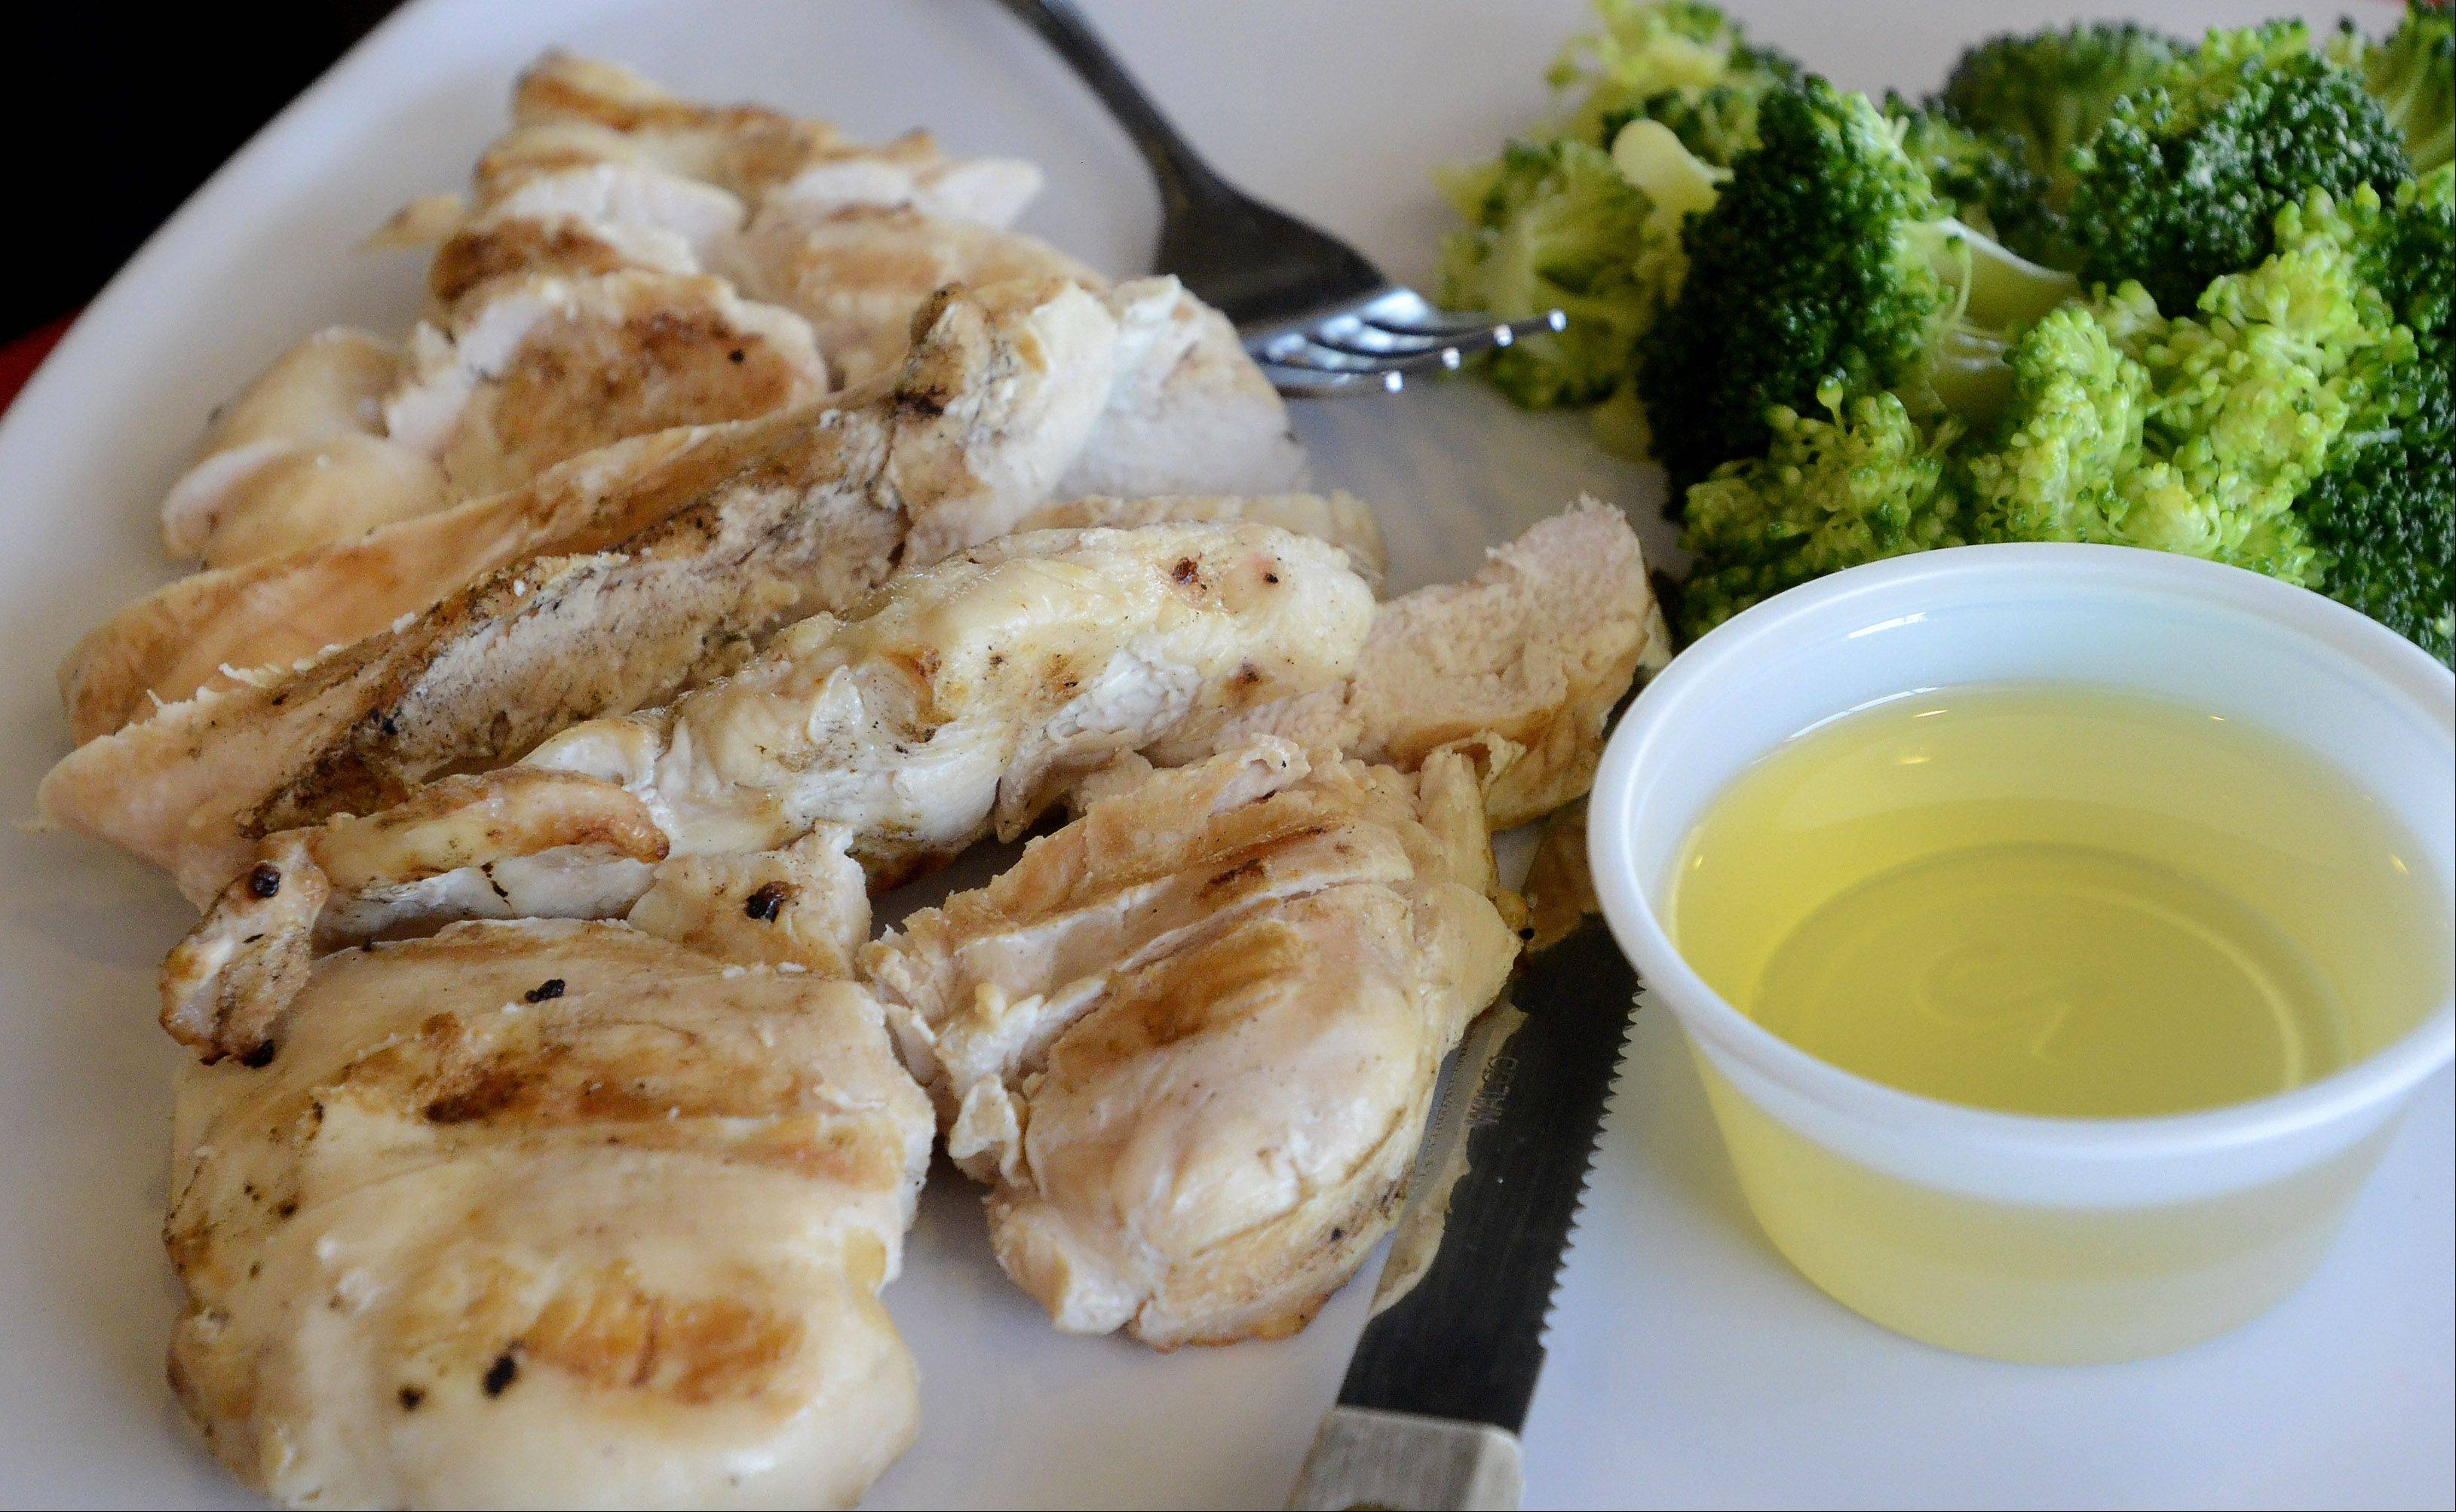 This is what I ended up ordering -- grilled chicken and steamed broccoli, with a side order of olive oil for the vegetables. That fulfills my macronutrient needs: protein, carbohydrate and fat.